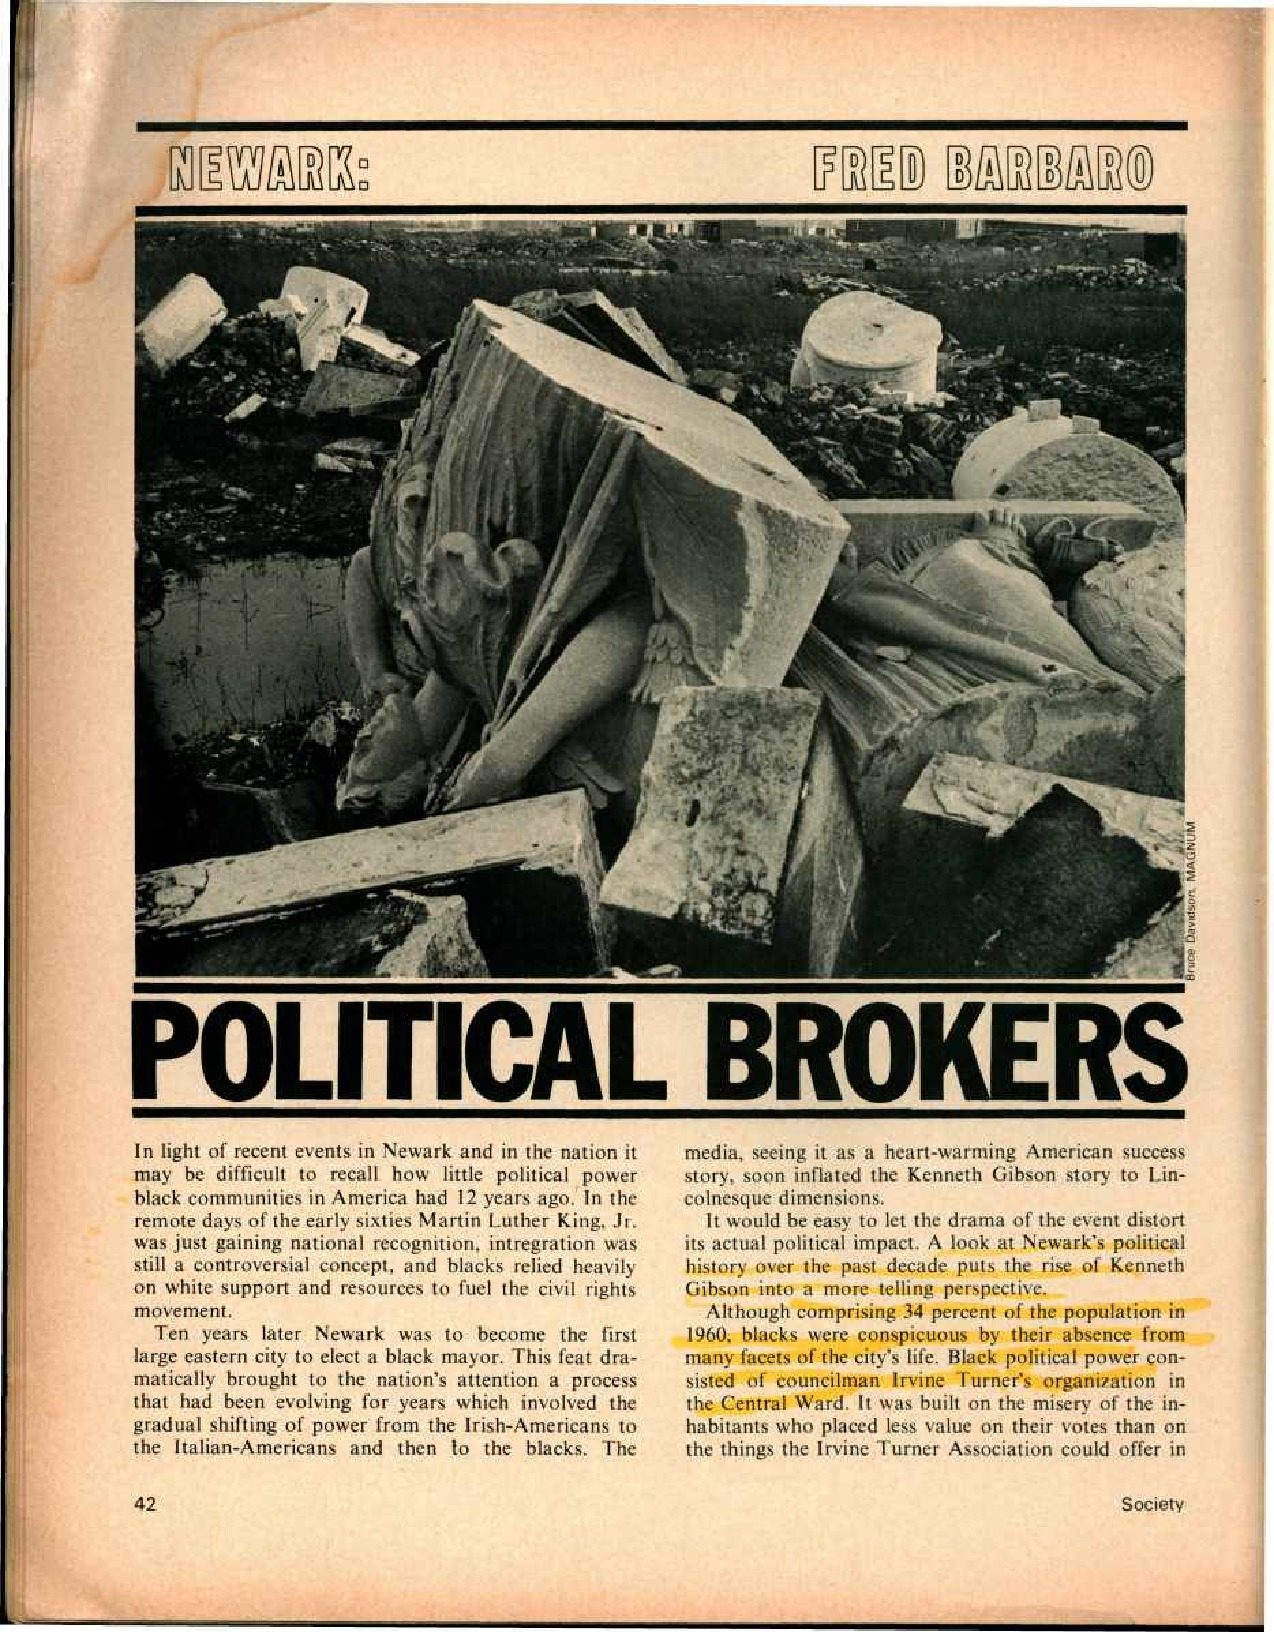 Newark: Political Brokers (1972)